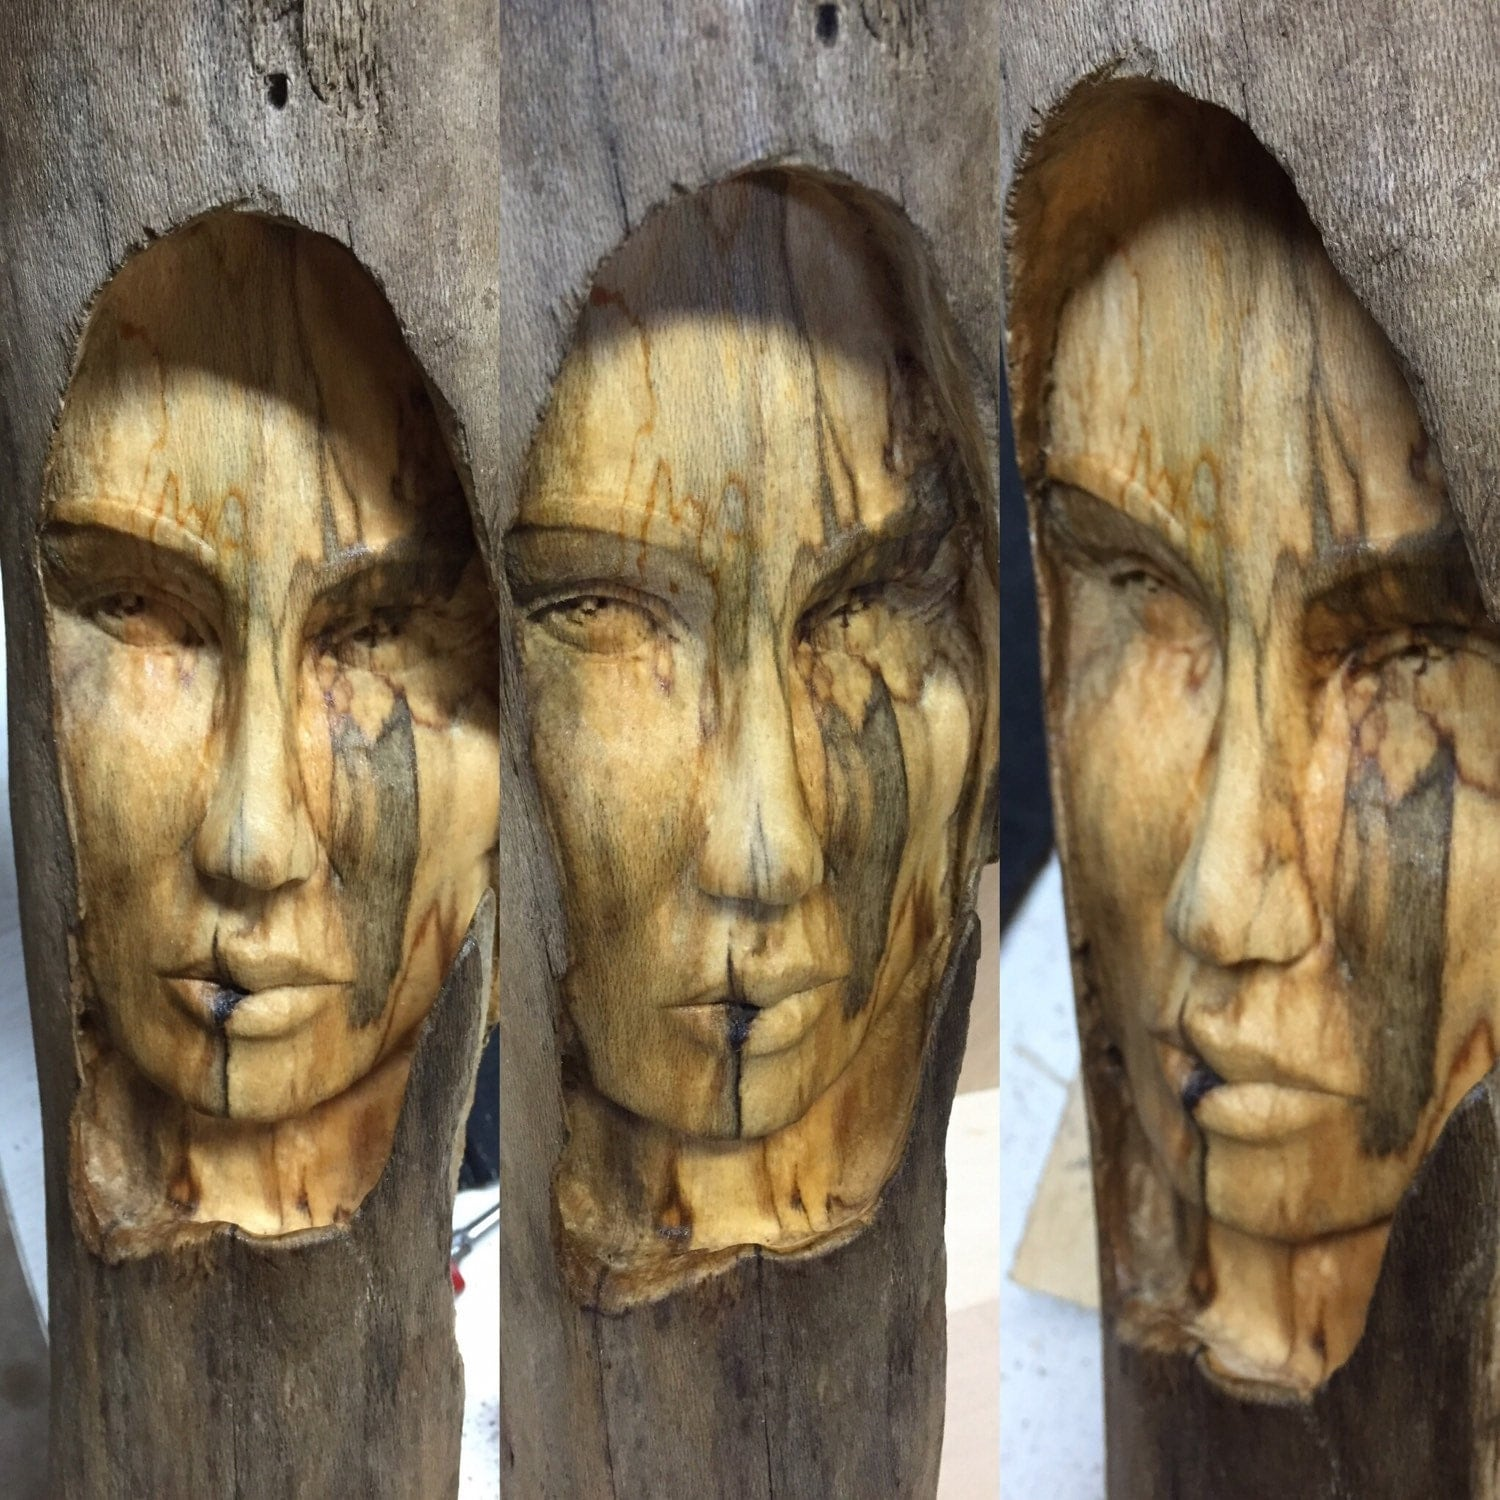 Man Cave Gift Ideas Female Wood Spirit Carving Wood Sculpture Hand Carved Wood